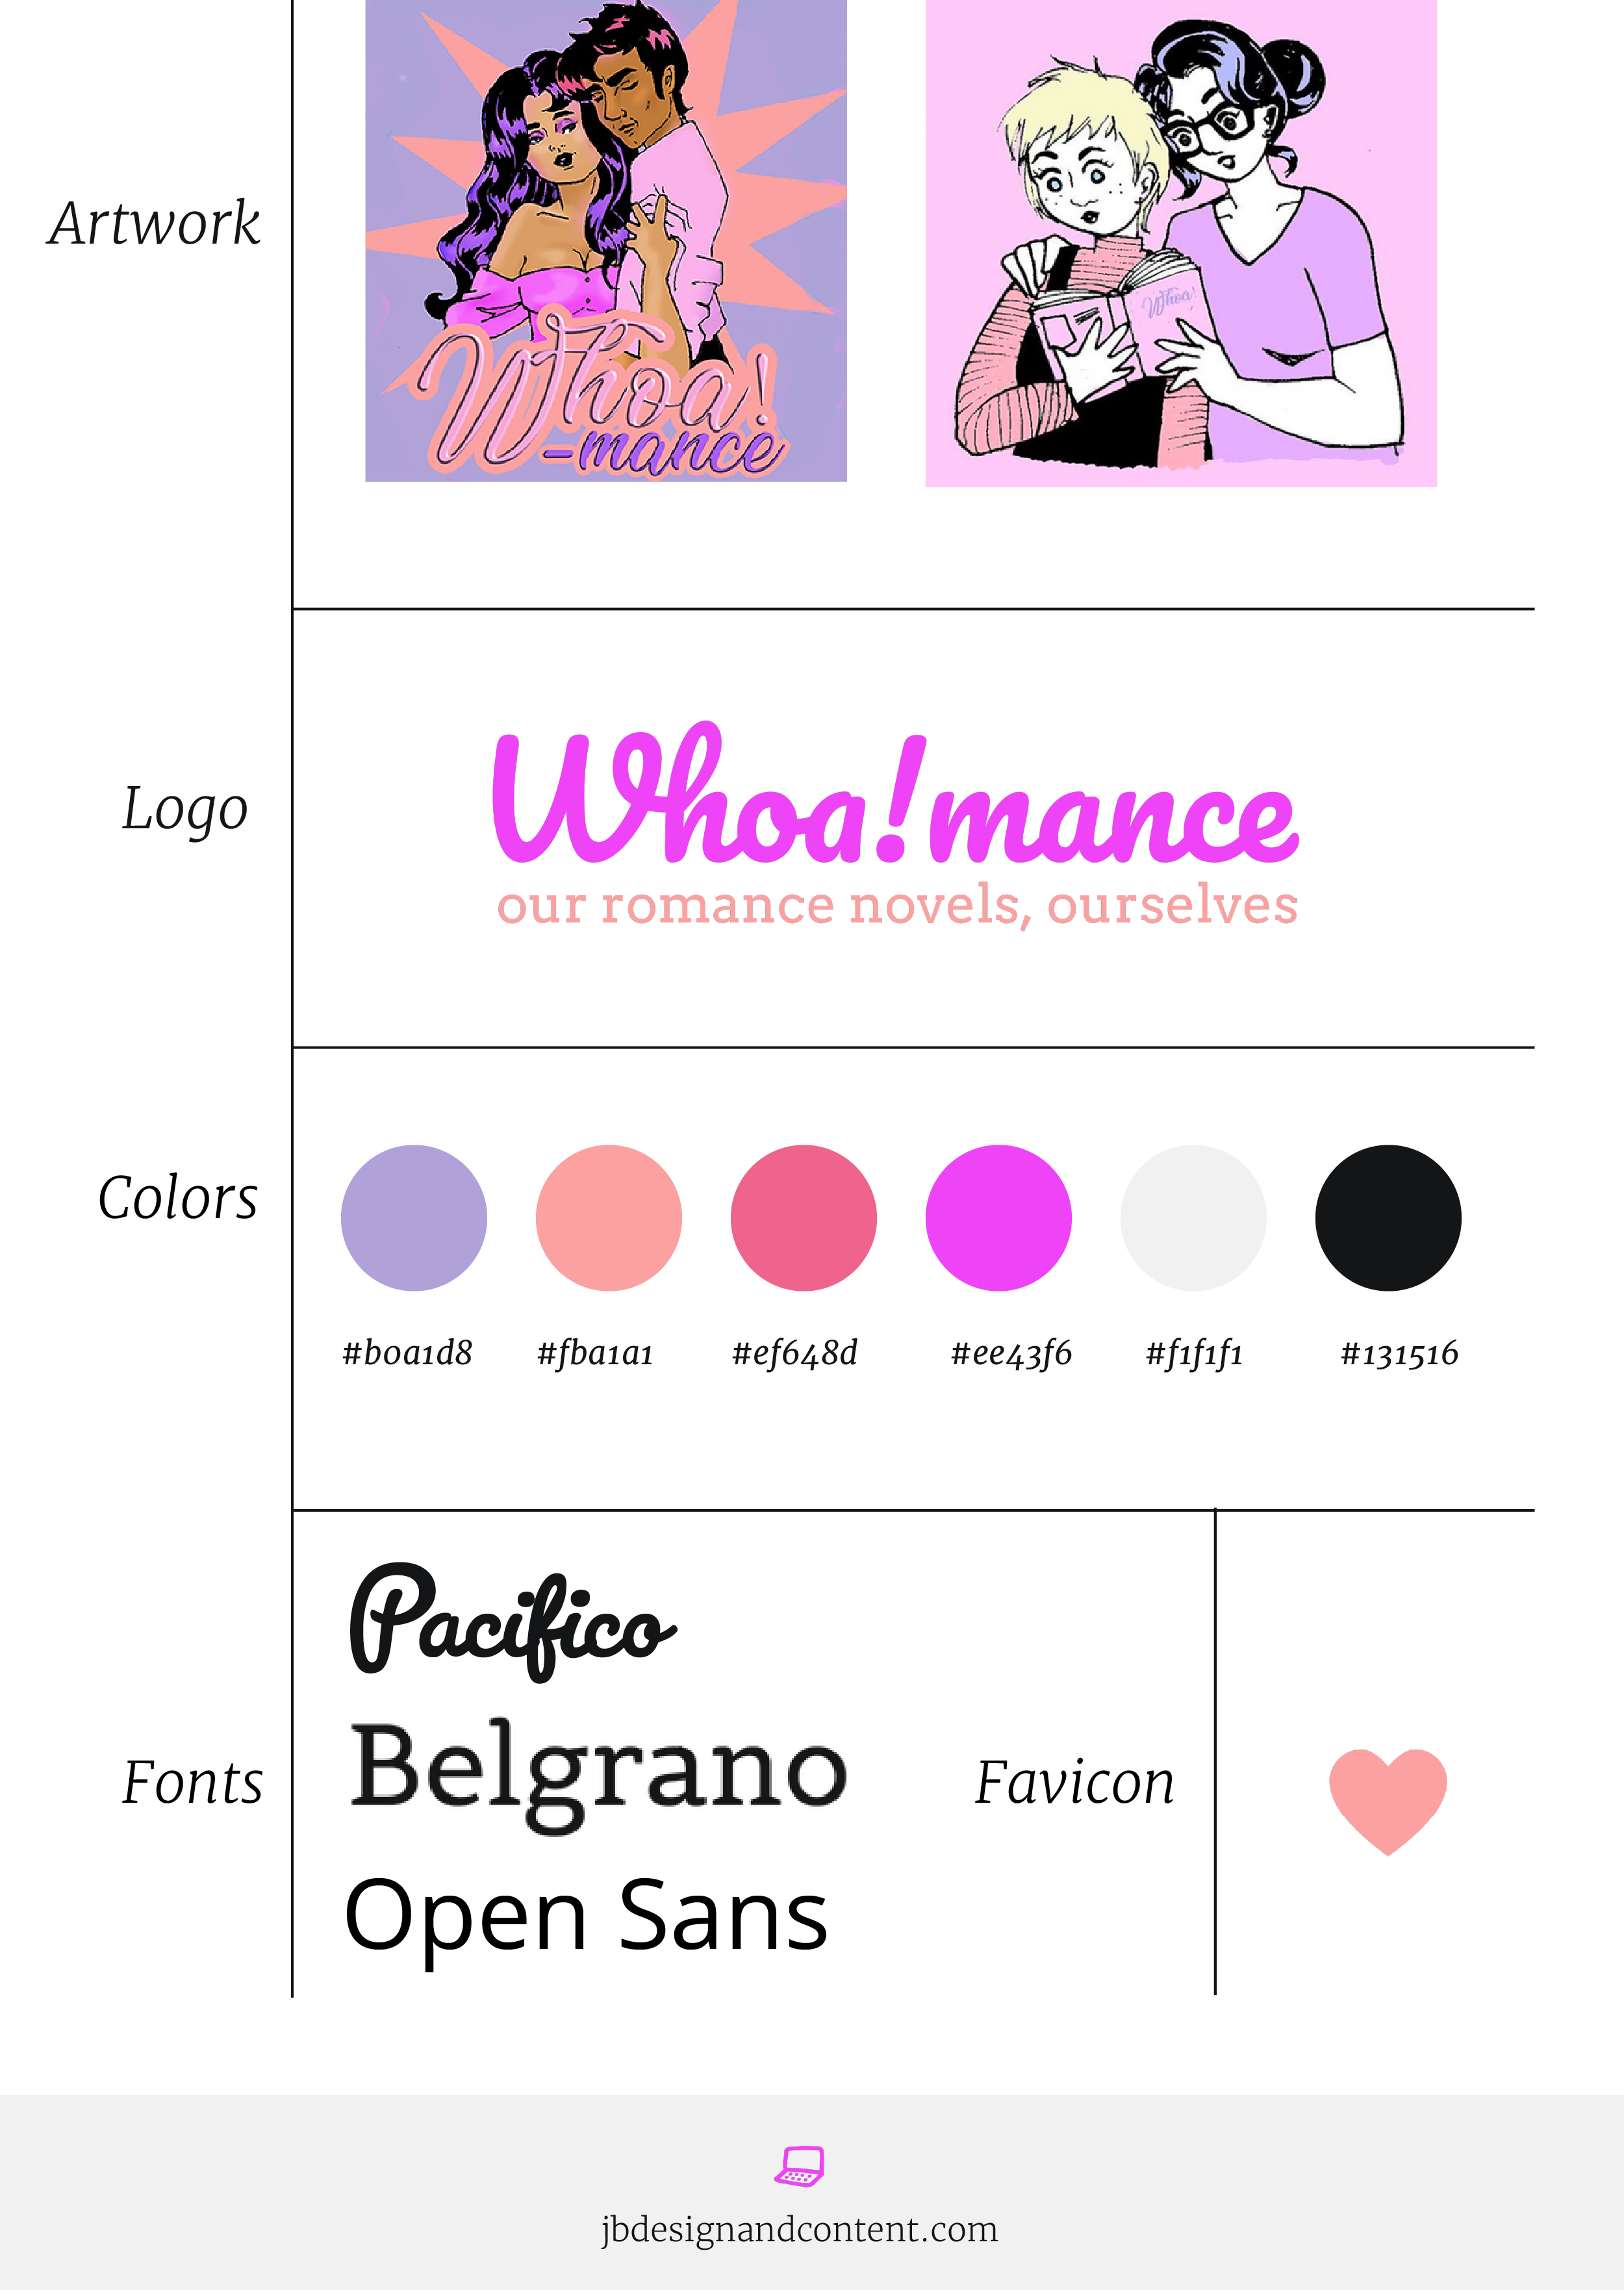 Whoa!mance_Design_Overview.png